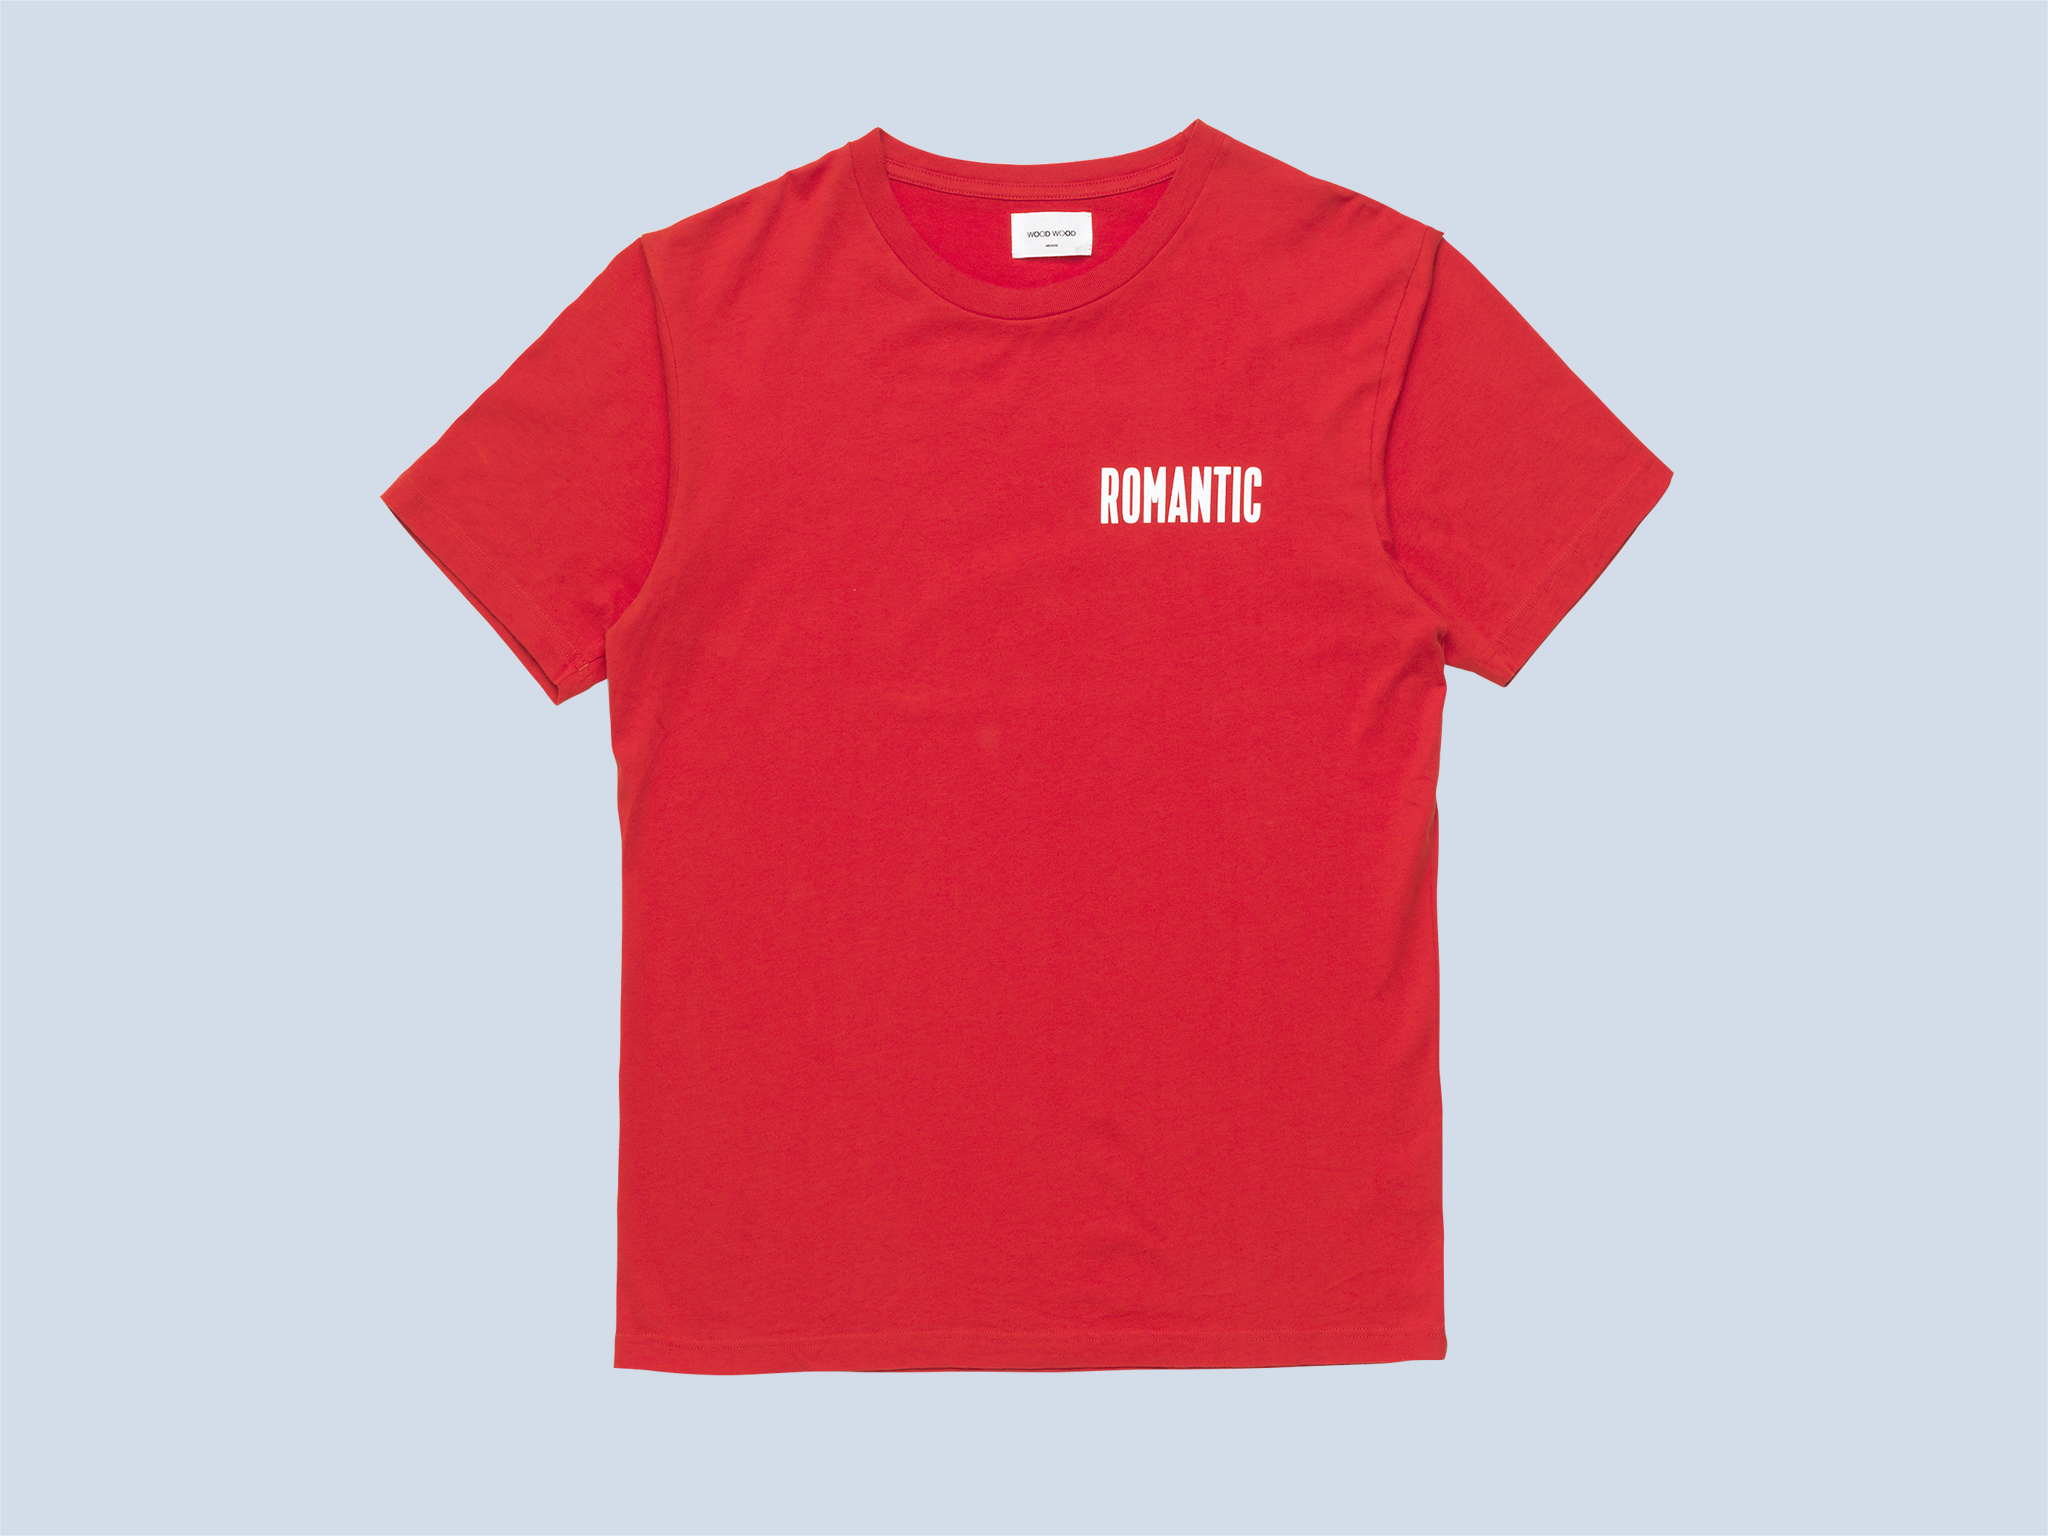 Sami T-Shirt, Valentine's Day gifts for him